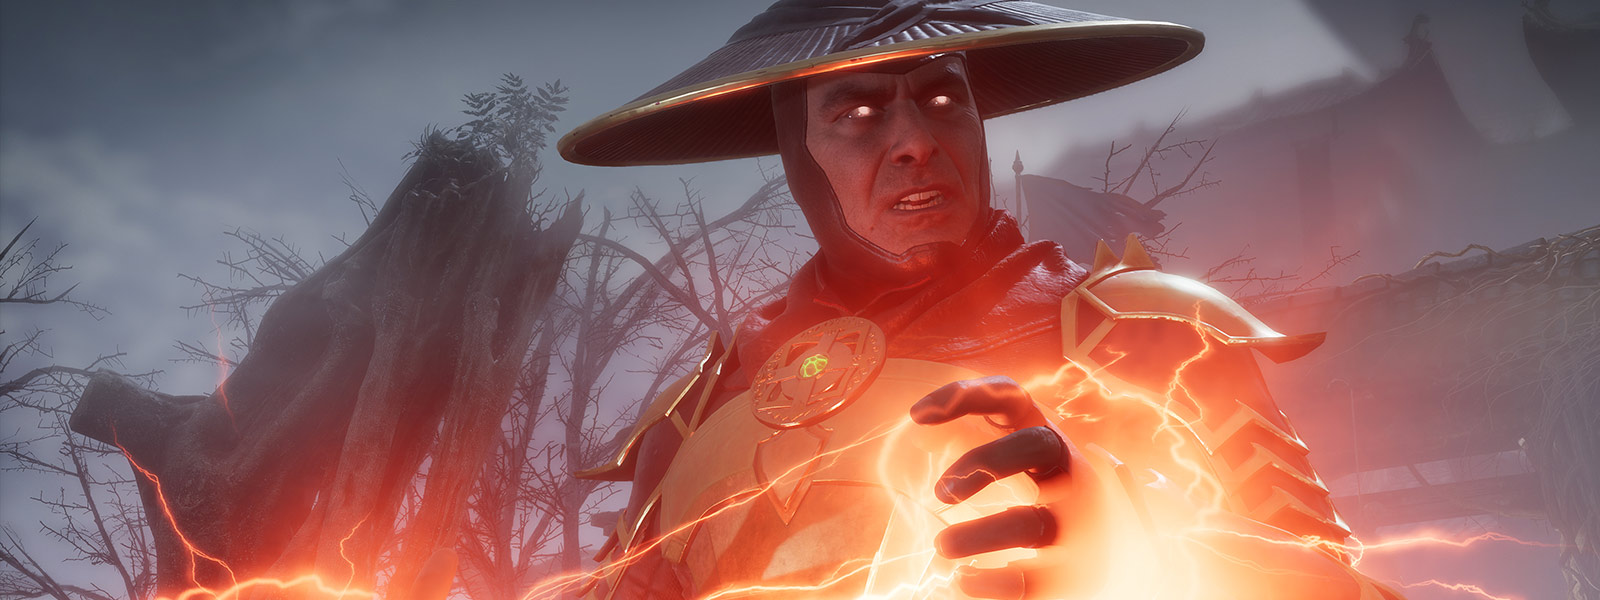 Front view of Raiden as he charges electricity between his hands